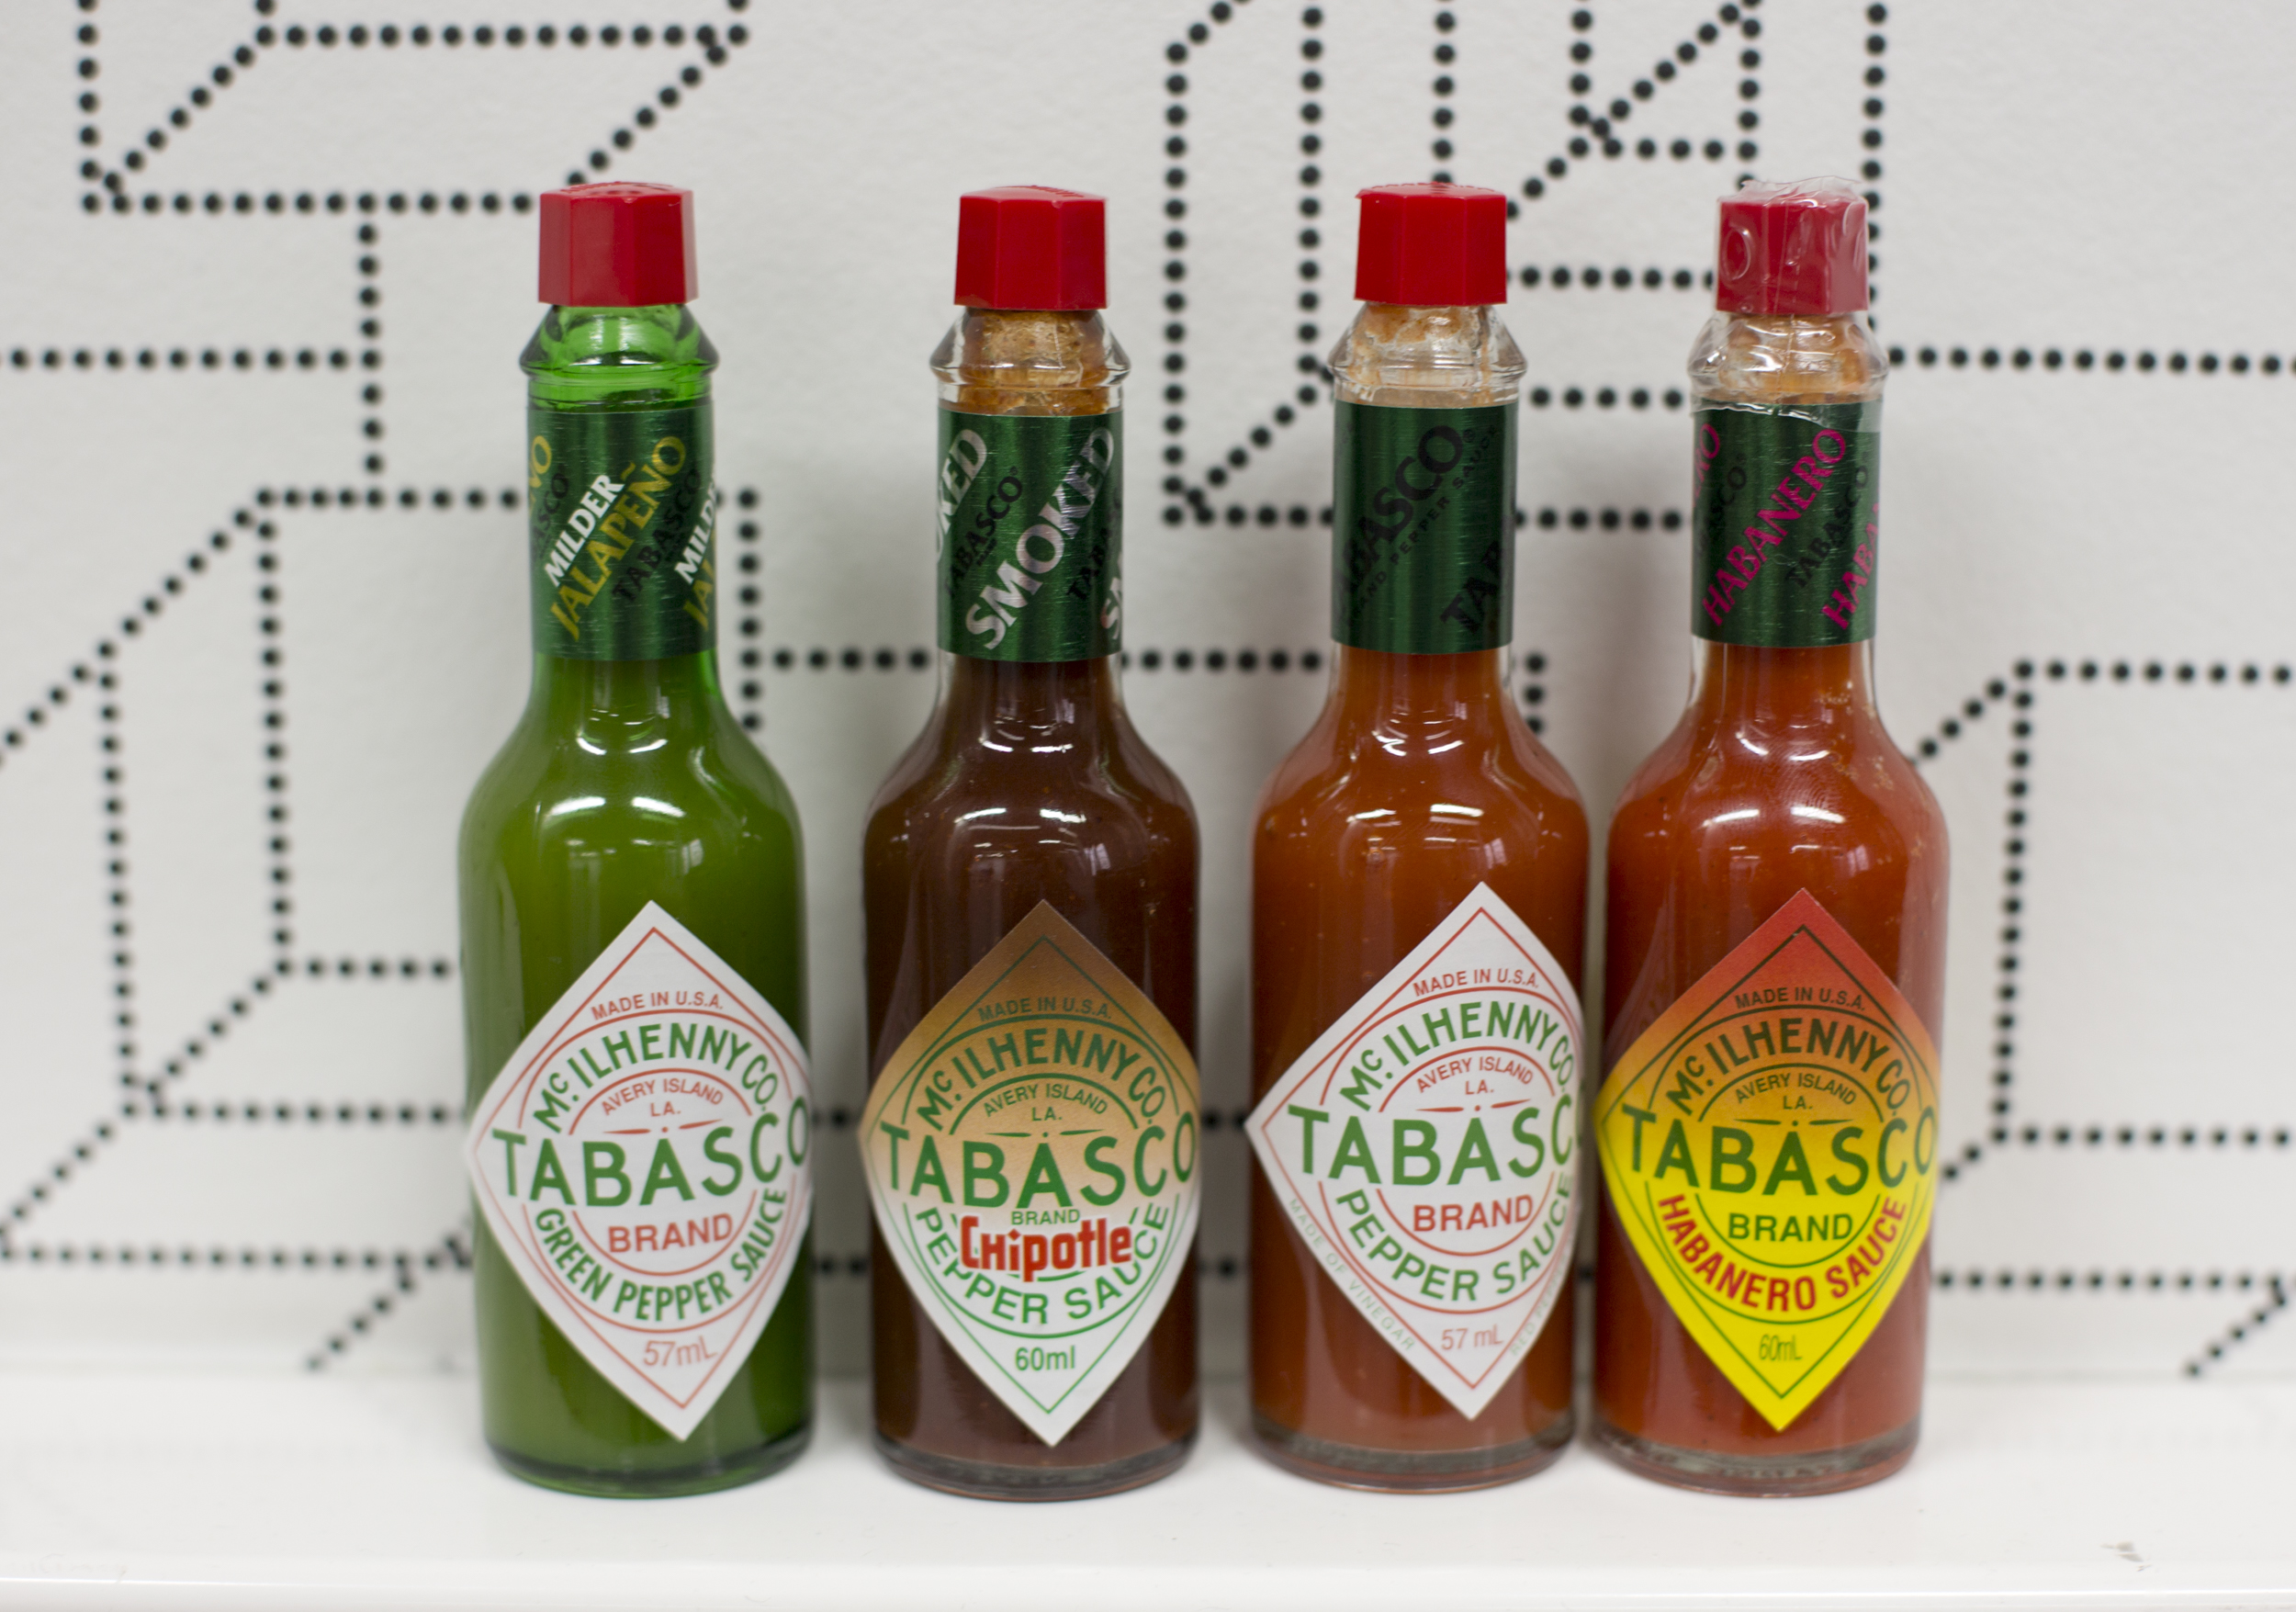 Different kind of Tabasco sauces